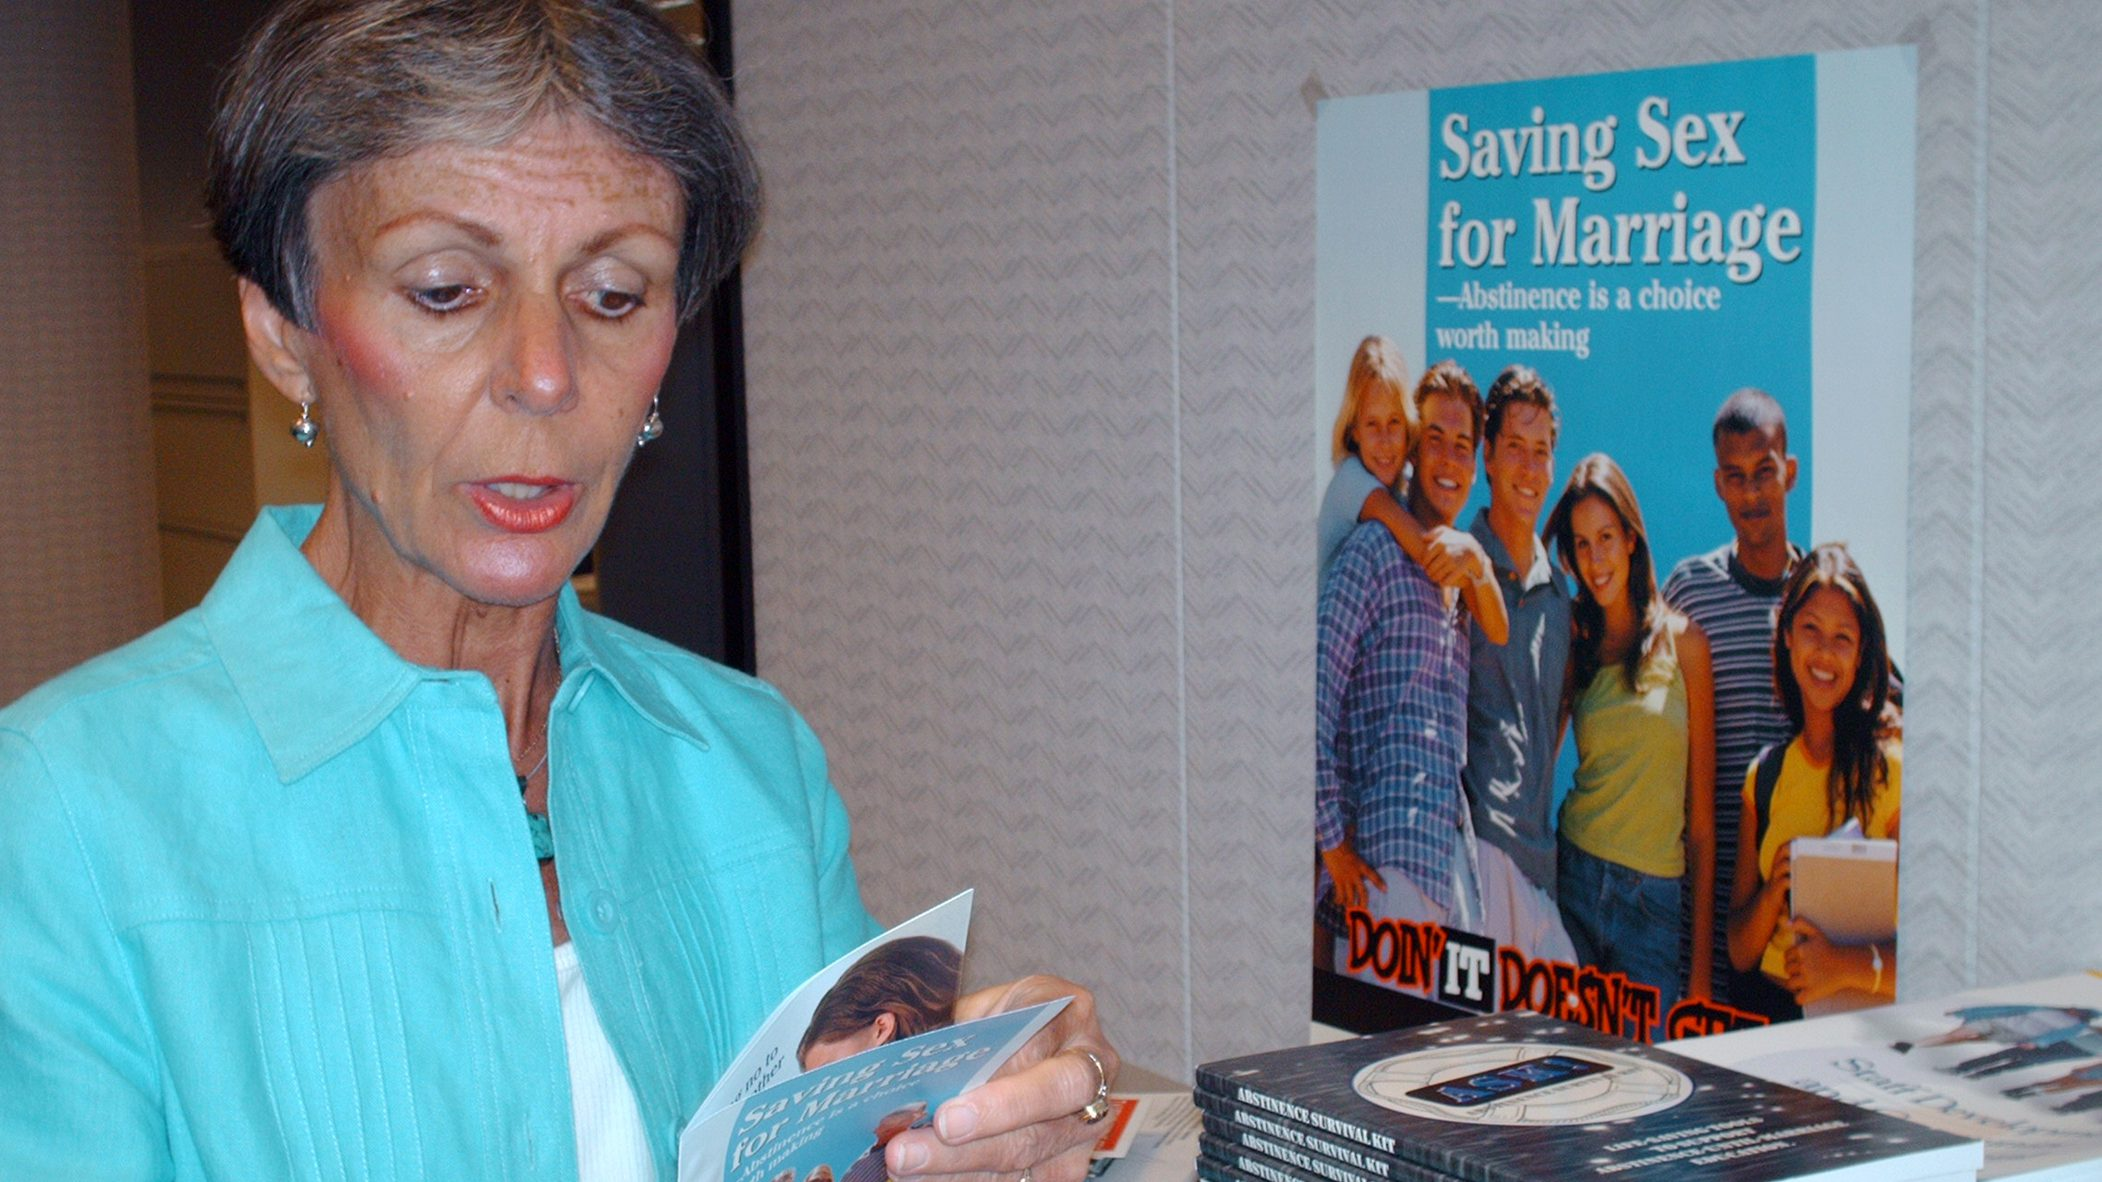 ** ADVANCE FOR SUNDAY JULY 2 ** Susan Stewart, director of the state health department's Alabama Abstinence-Until-Marriage Education Program, poses with some of her office's literature Thursday, June 29, 2006, in Montgomery, Ala. Alabama teachers walk a tightrope between educating their students and not straying beyond any of the state's abstinence-only guidelines found in the Alabama Code. Some officials say clearer guidelines and district wide curriculum are needed so teachers will know exactly what is expected of them and what they can or can't say if certain subjects are broached by the students. (AP Photo/Desiree Hunter)